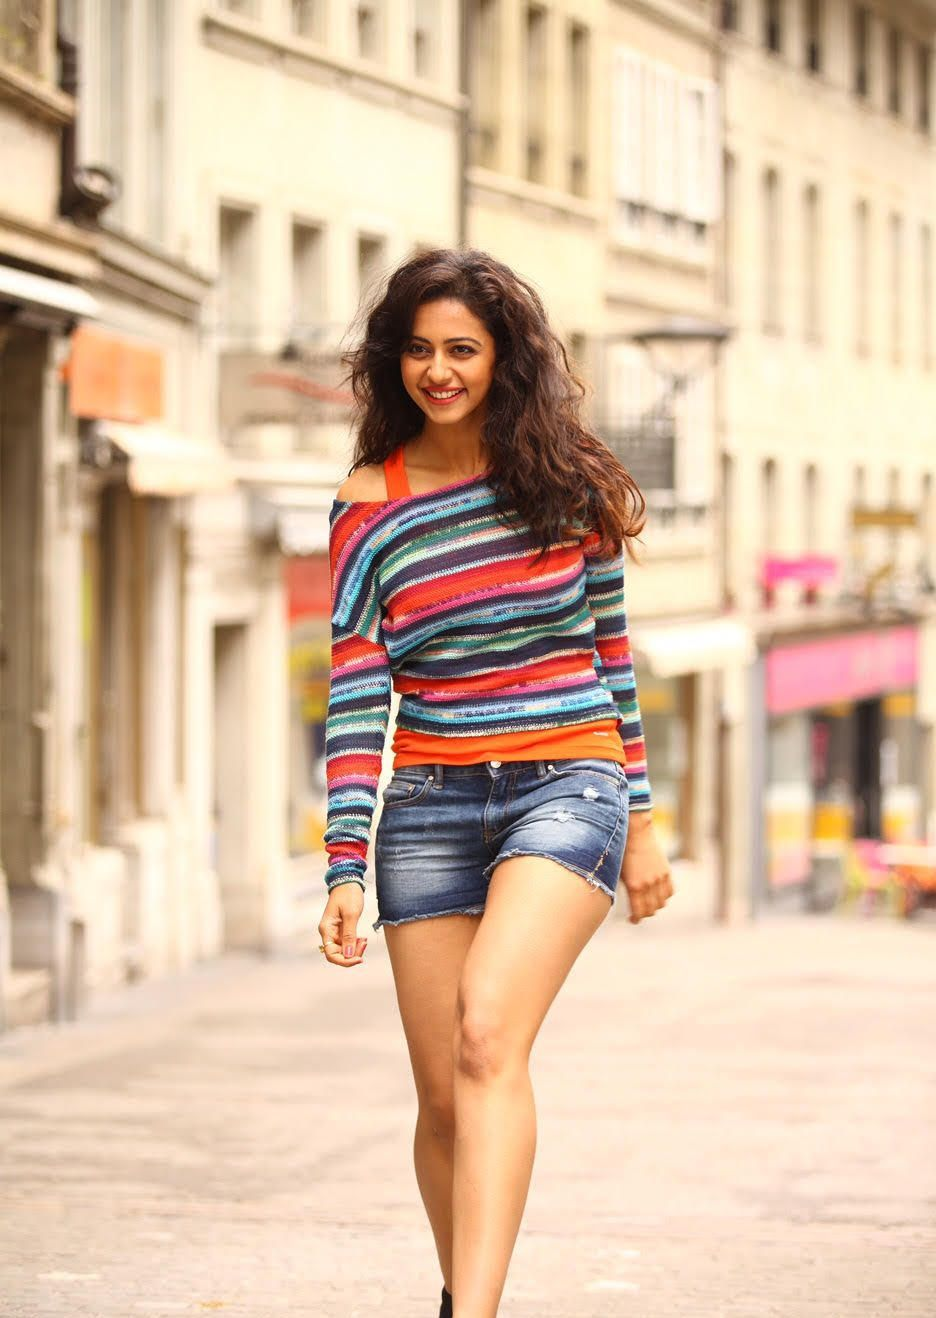 rakul preet singh fantastic images & hd wallpapers - hd photos